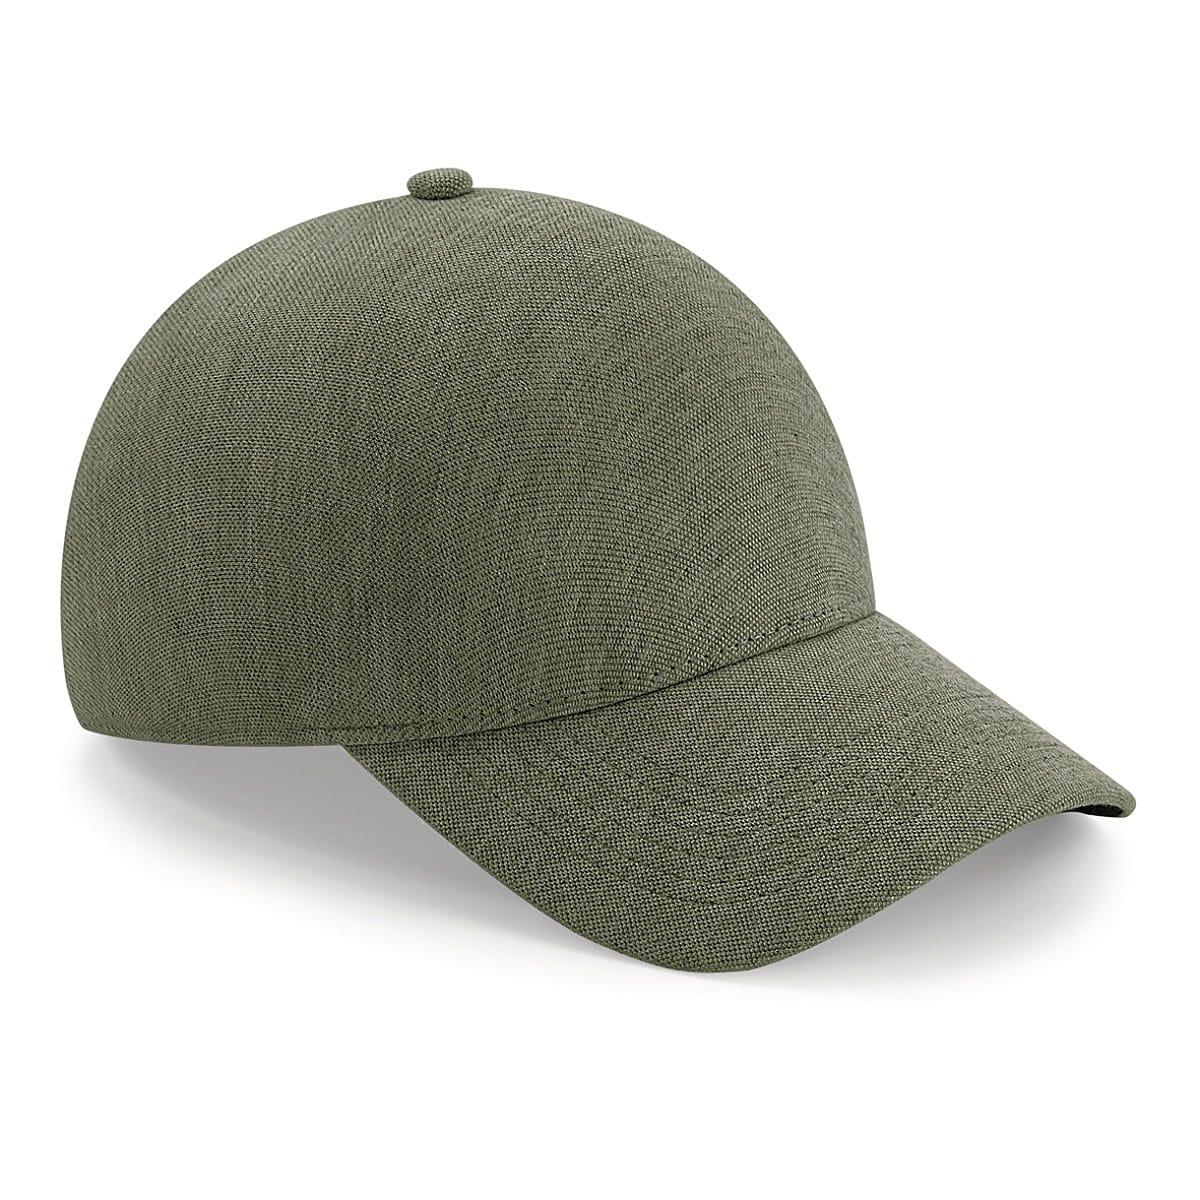 Beechfield Seamless Athleisure Cap in Heather Olive (Product Code: B556)